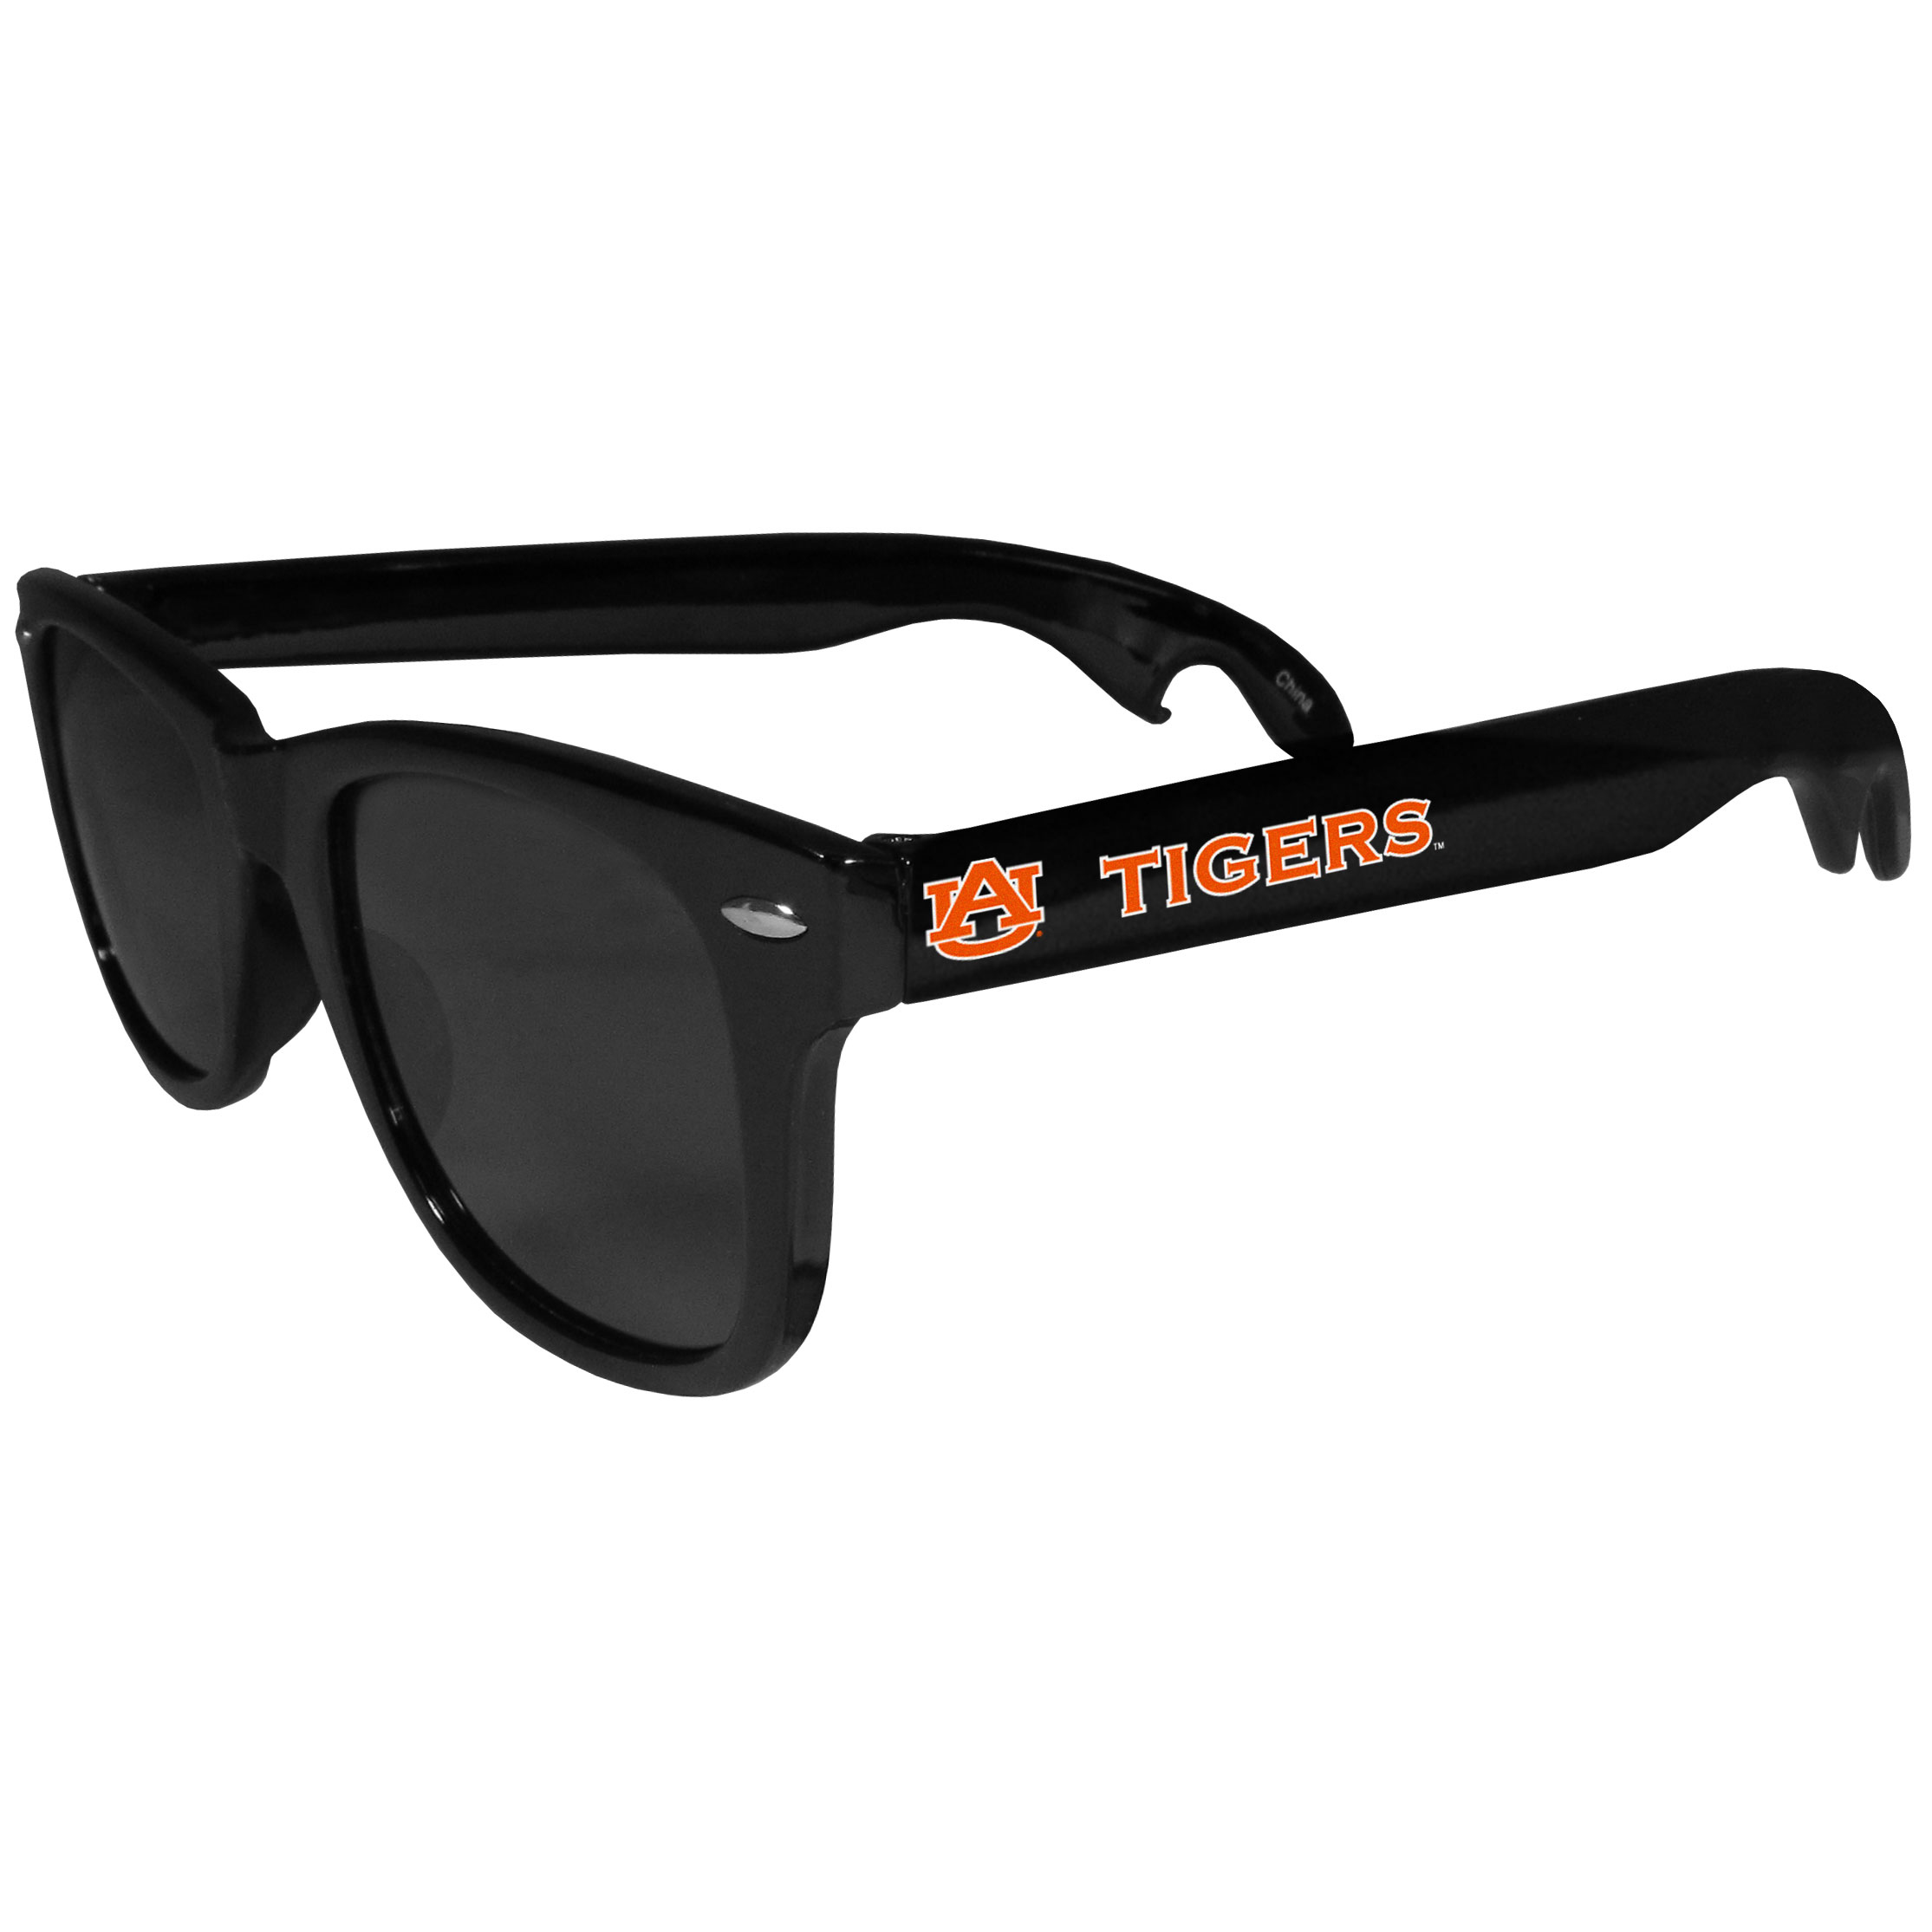 Auburn Tigers Beachfarer Bottle Opener Sunglasses - Seriously, these sunglasses open bottles! Keep the party going with these amazing Auburn Tigers bottle opener sunglasses. The stylish retro frames feature team designs on the arms and functional bottle openers on the end of the arms. Whether you are at the beach or having a backyard BBQ on game day, these shades will keep your eyes protected with 100% UVA/UVB protection and keep you hydrated with the handy bottle opener arms.